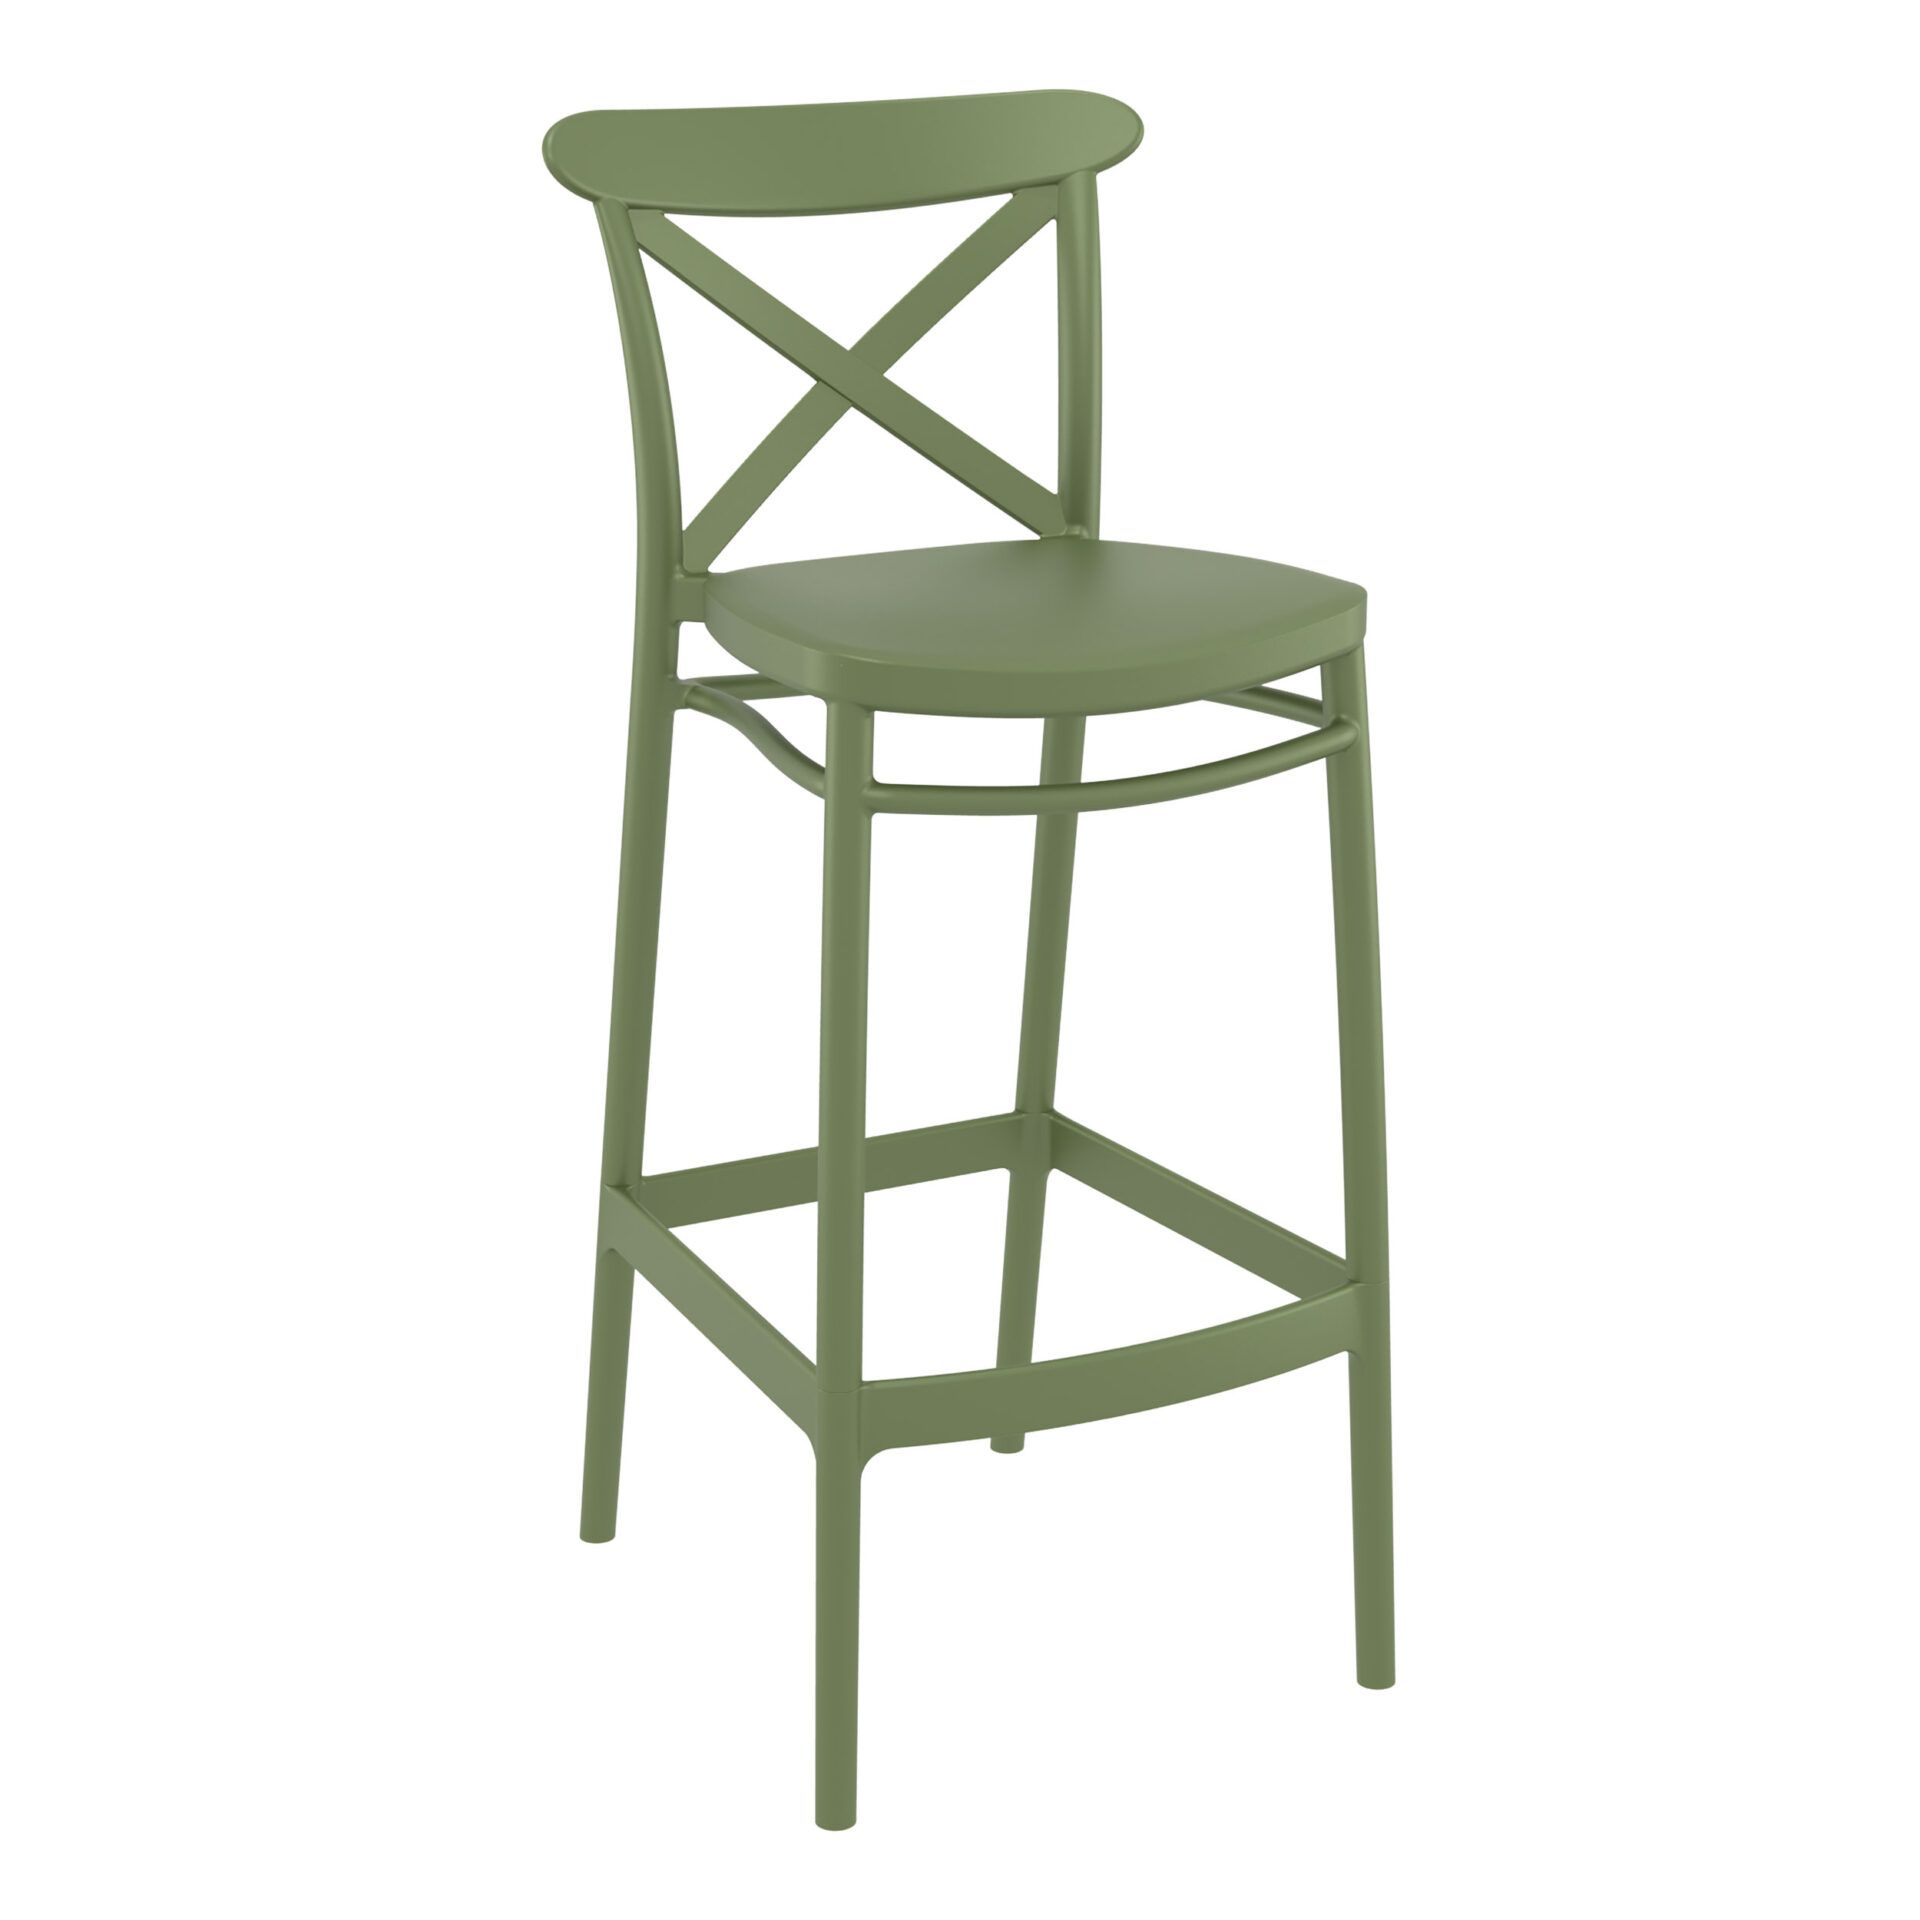 polypropylene bar cross barstool 75 olive green front side